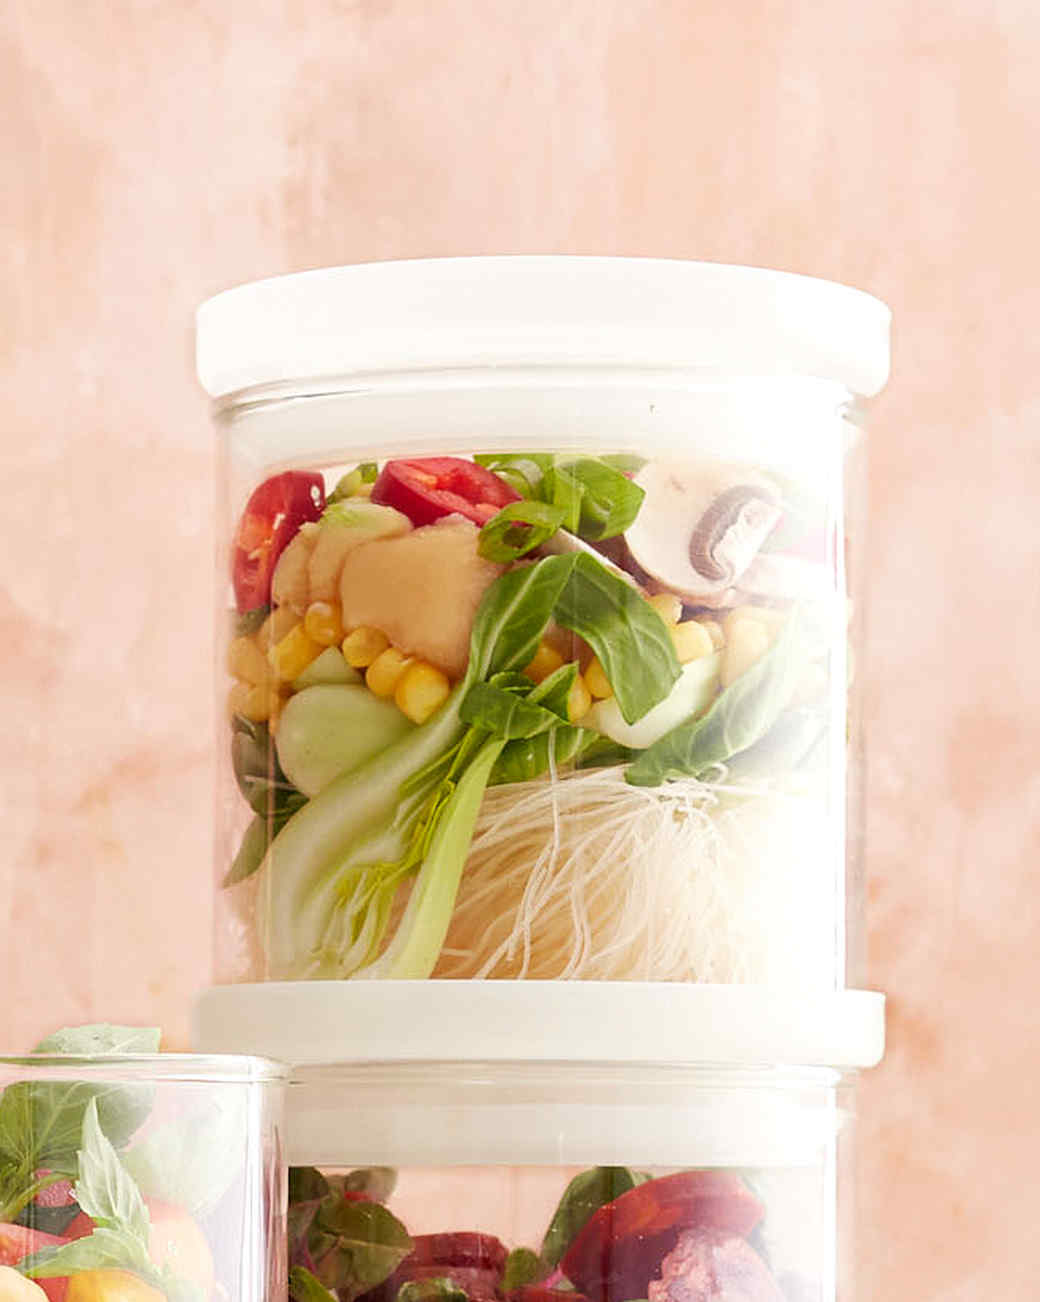 soups-in-jars-325-exp3-d113040-asian-bok-choy.jpg